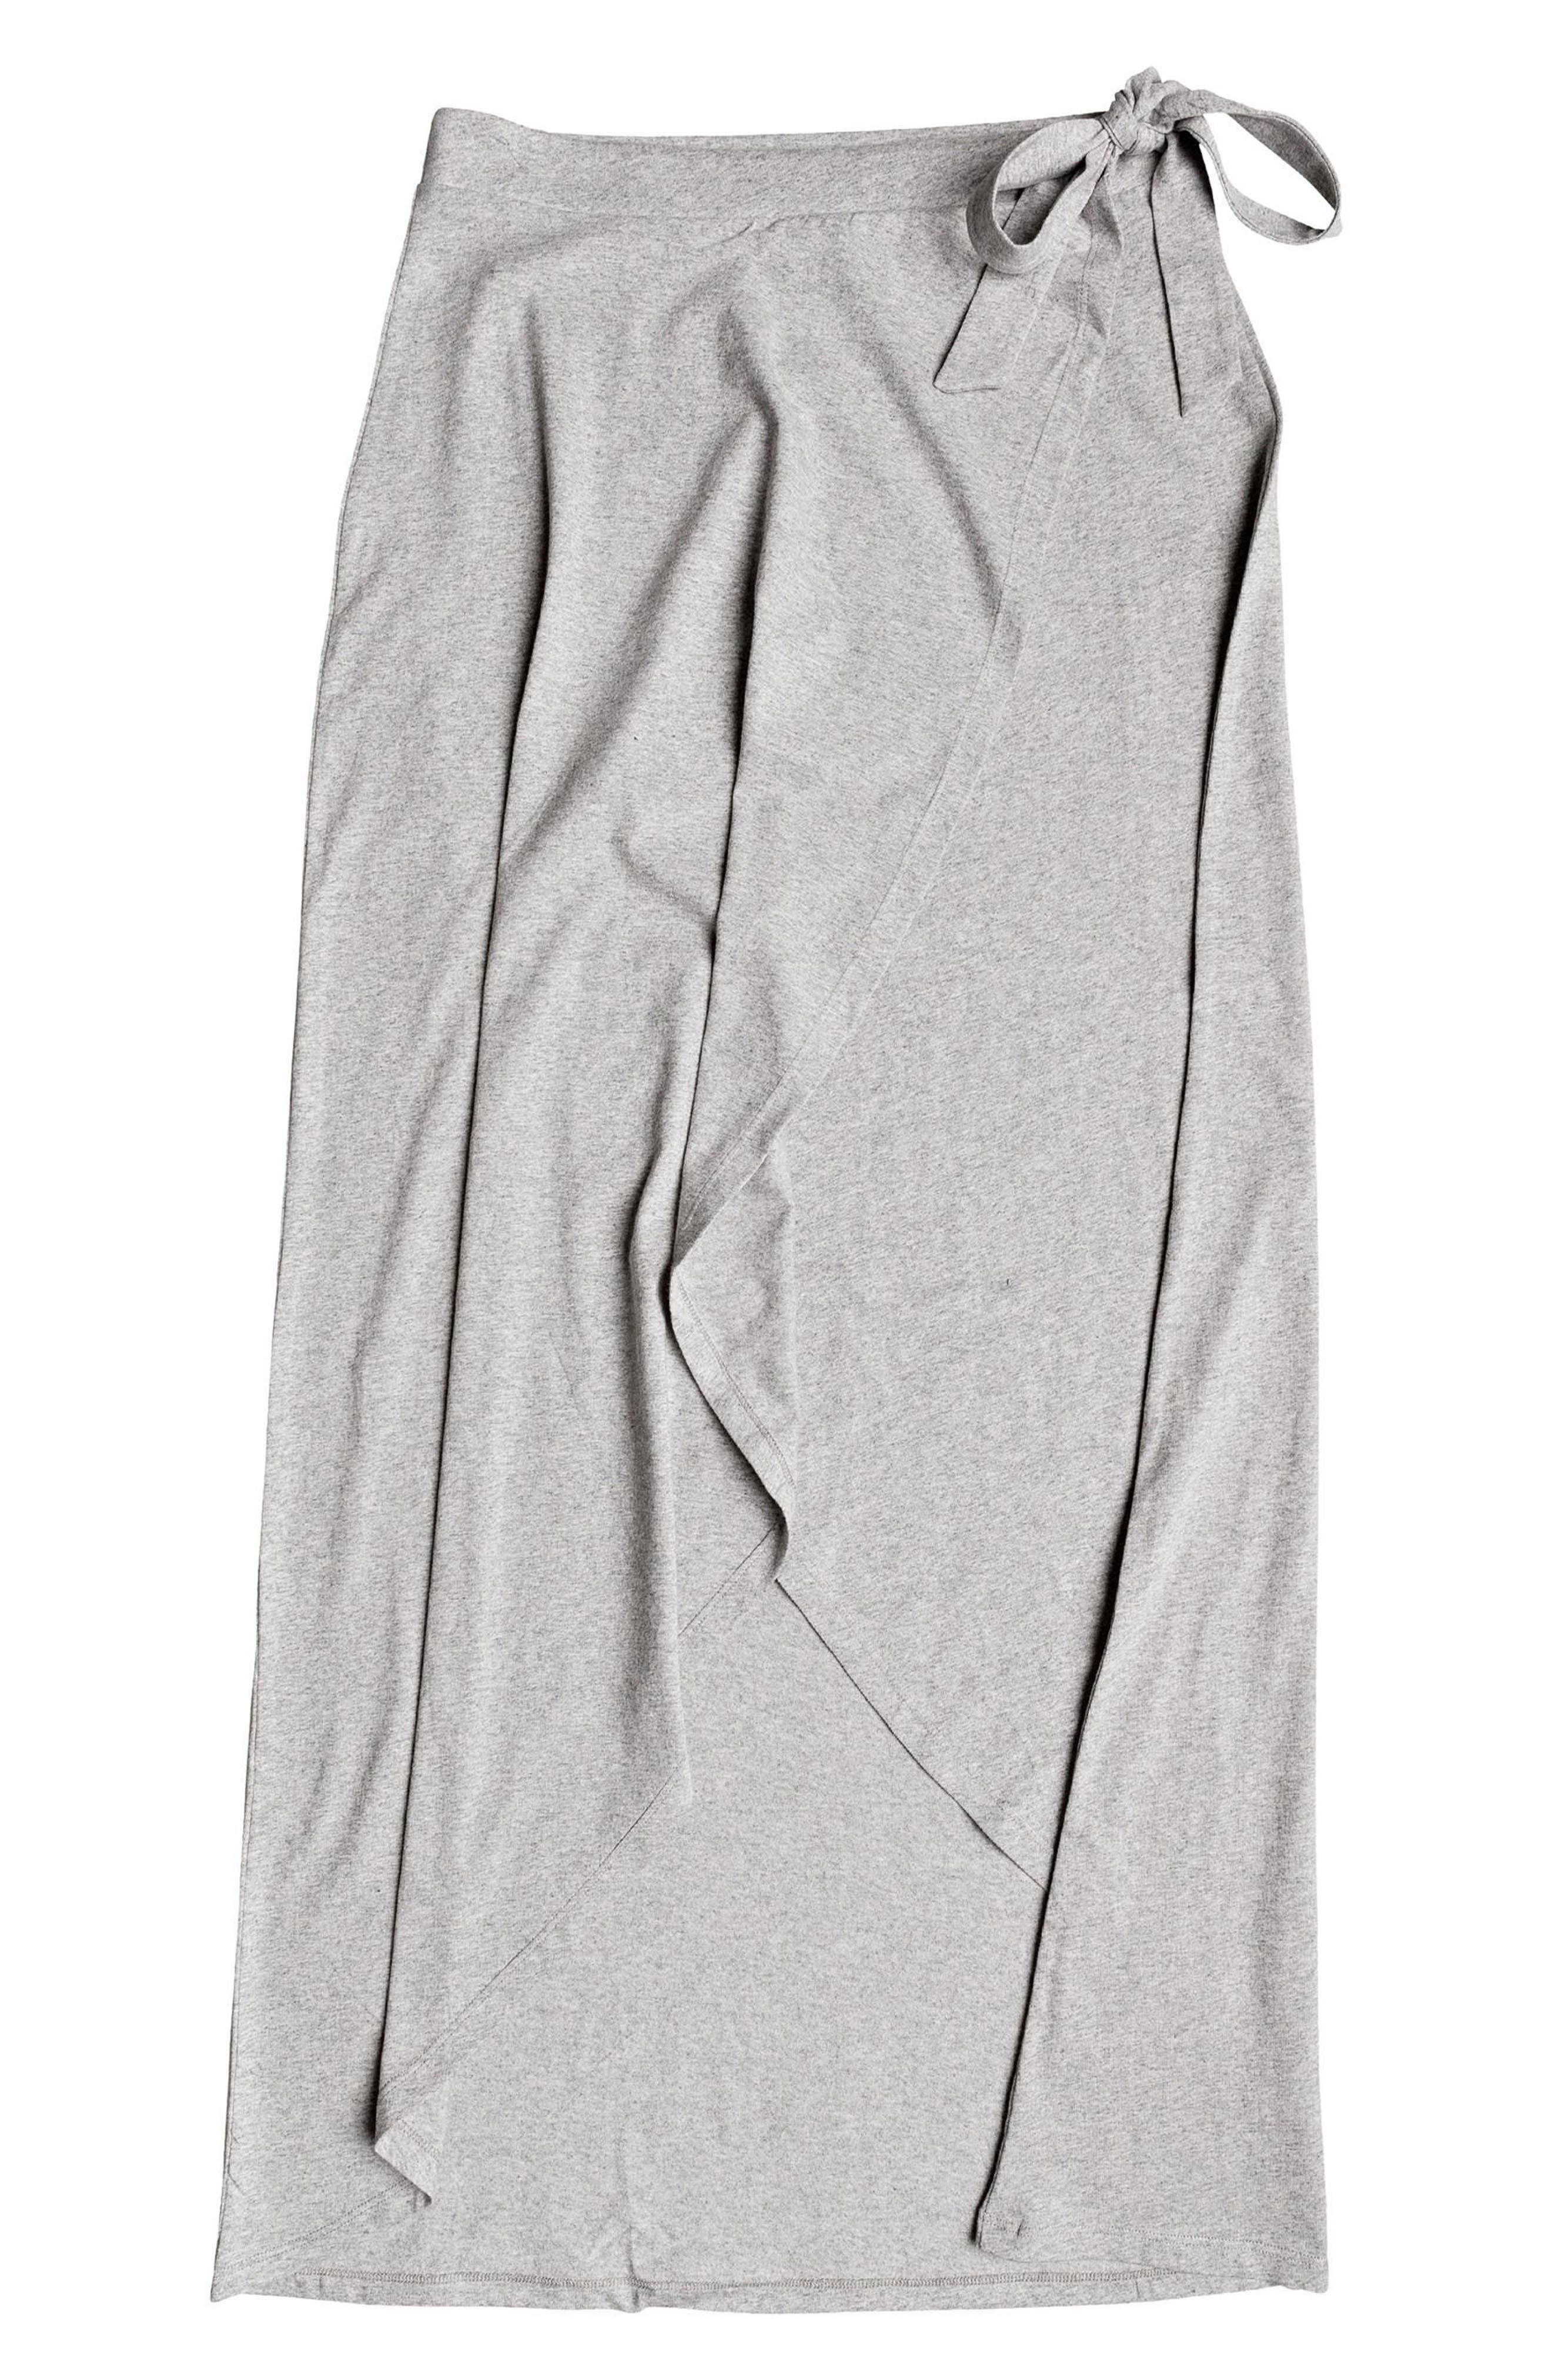 Everlasting Afternoon Long Wrap Skirt,                             Alternate thumbnail 4, color,